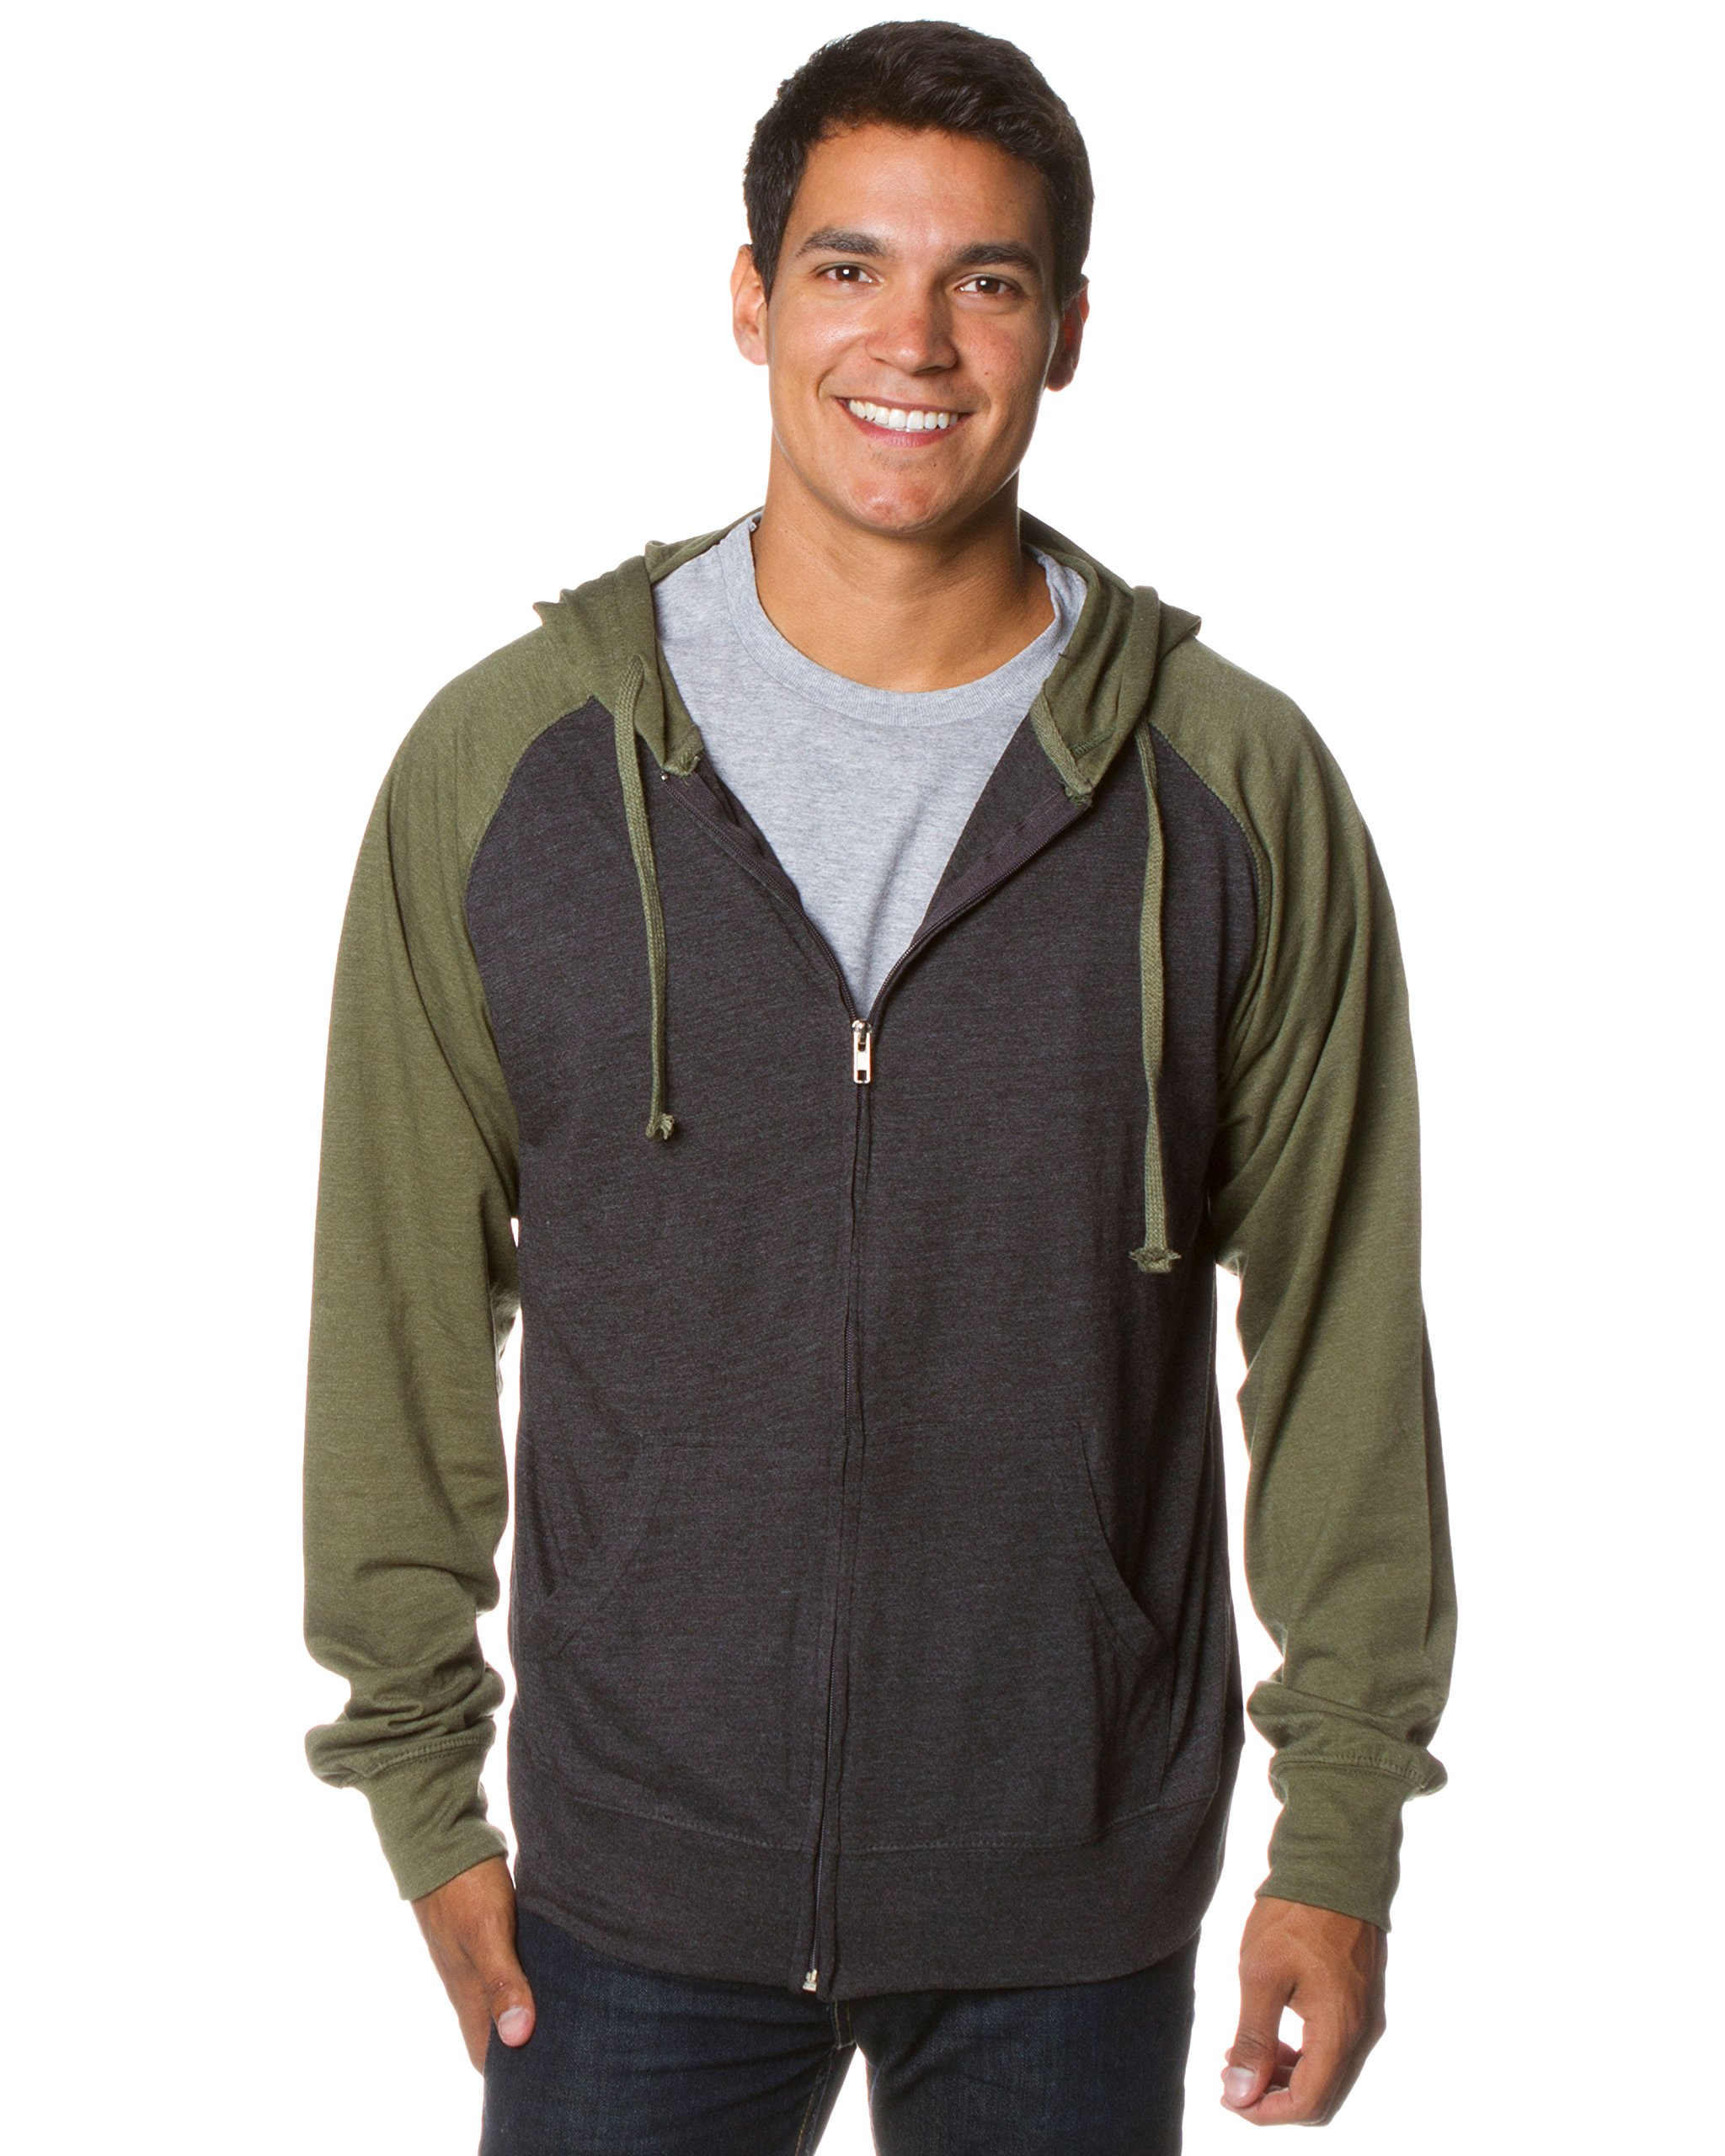 Global Blank Lightweight T-Shirt Material Raglan Zip up Hoodie with Pockets Charcoal/Army M